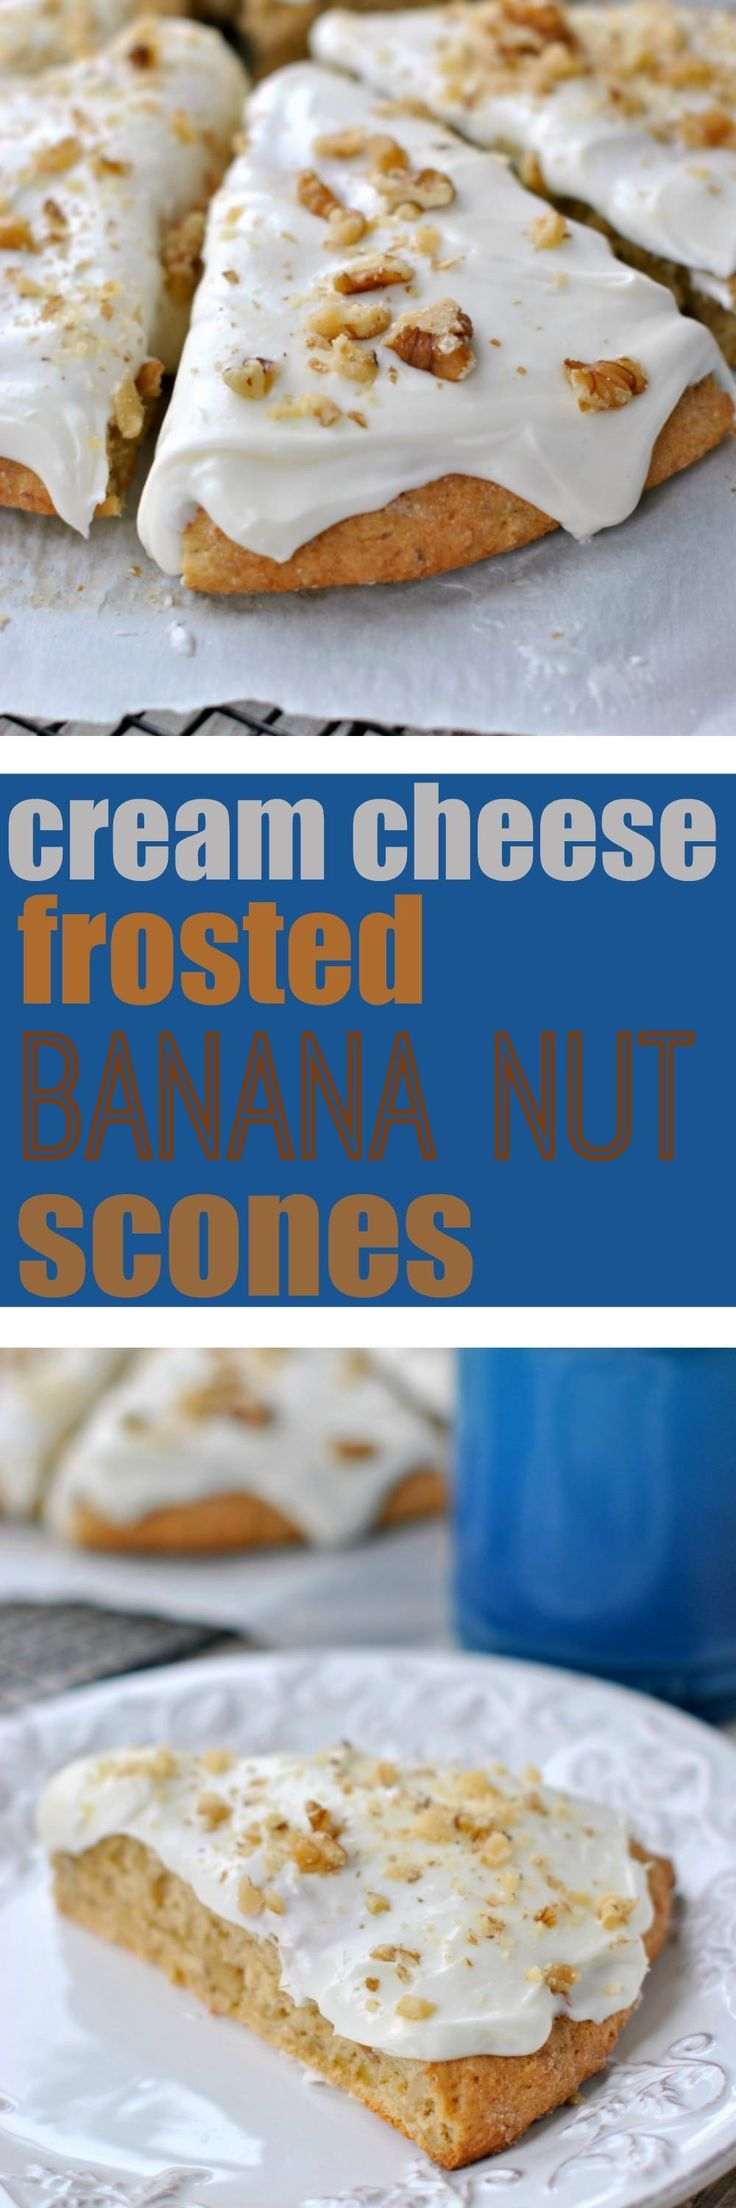 These Banana Nut Scones are so easy to make. I frosted them with a smooth Cream Cheese frosting that is to die for!